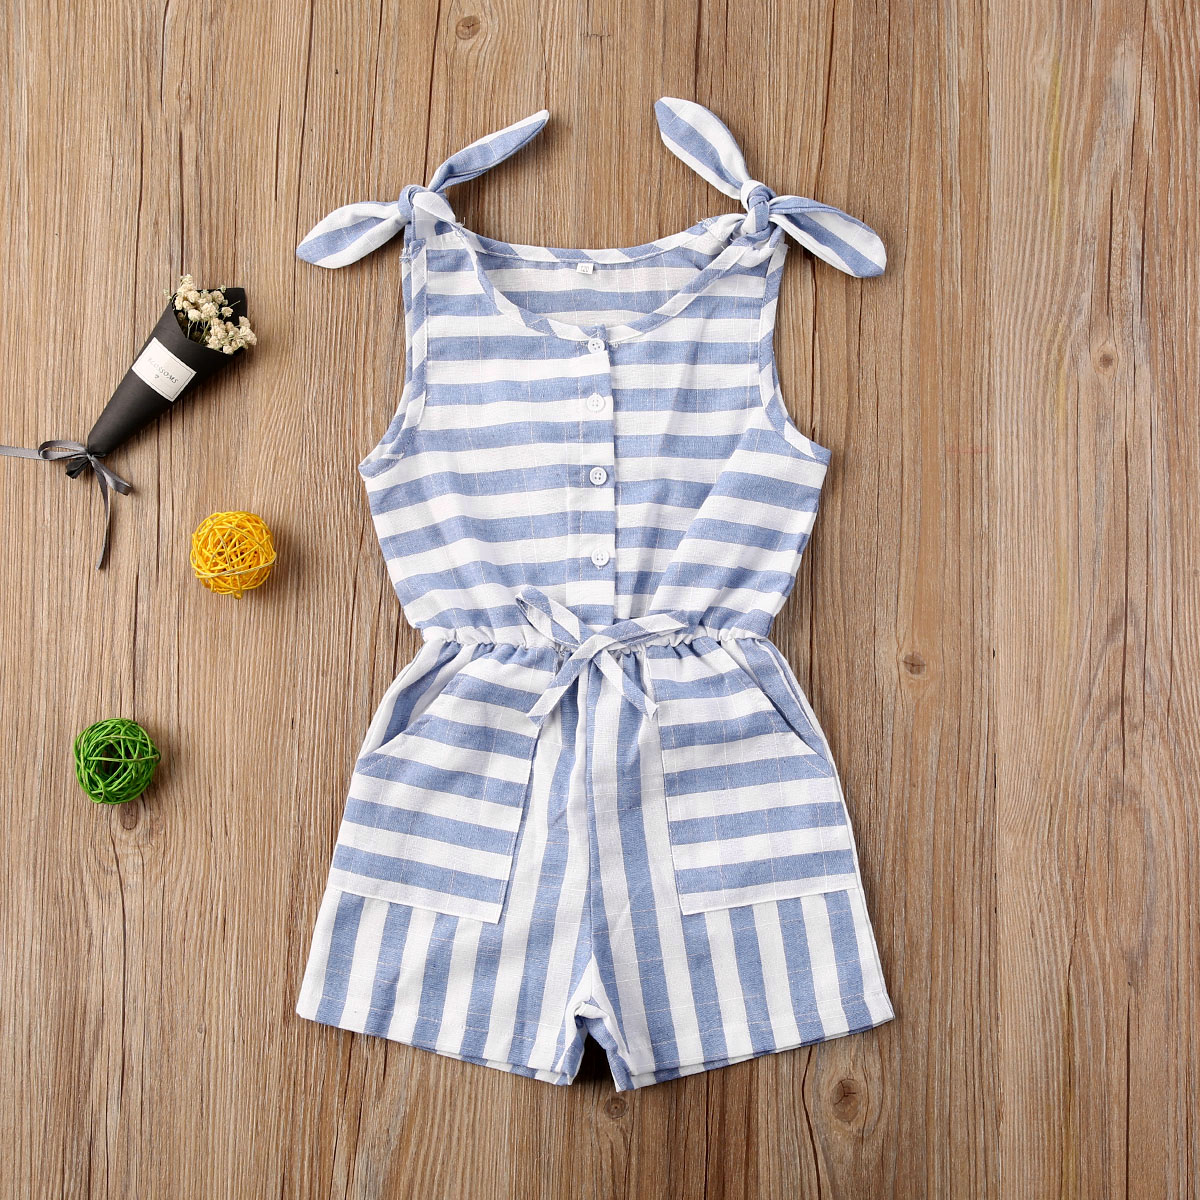 Pudcoco Toddler Baby Girl Clothes Summer Striped Sleeveless Romper Jumpsuit One-Piece Outfit Sunsuit Playsuit Clothes Summer